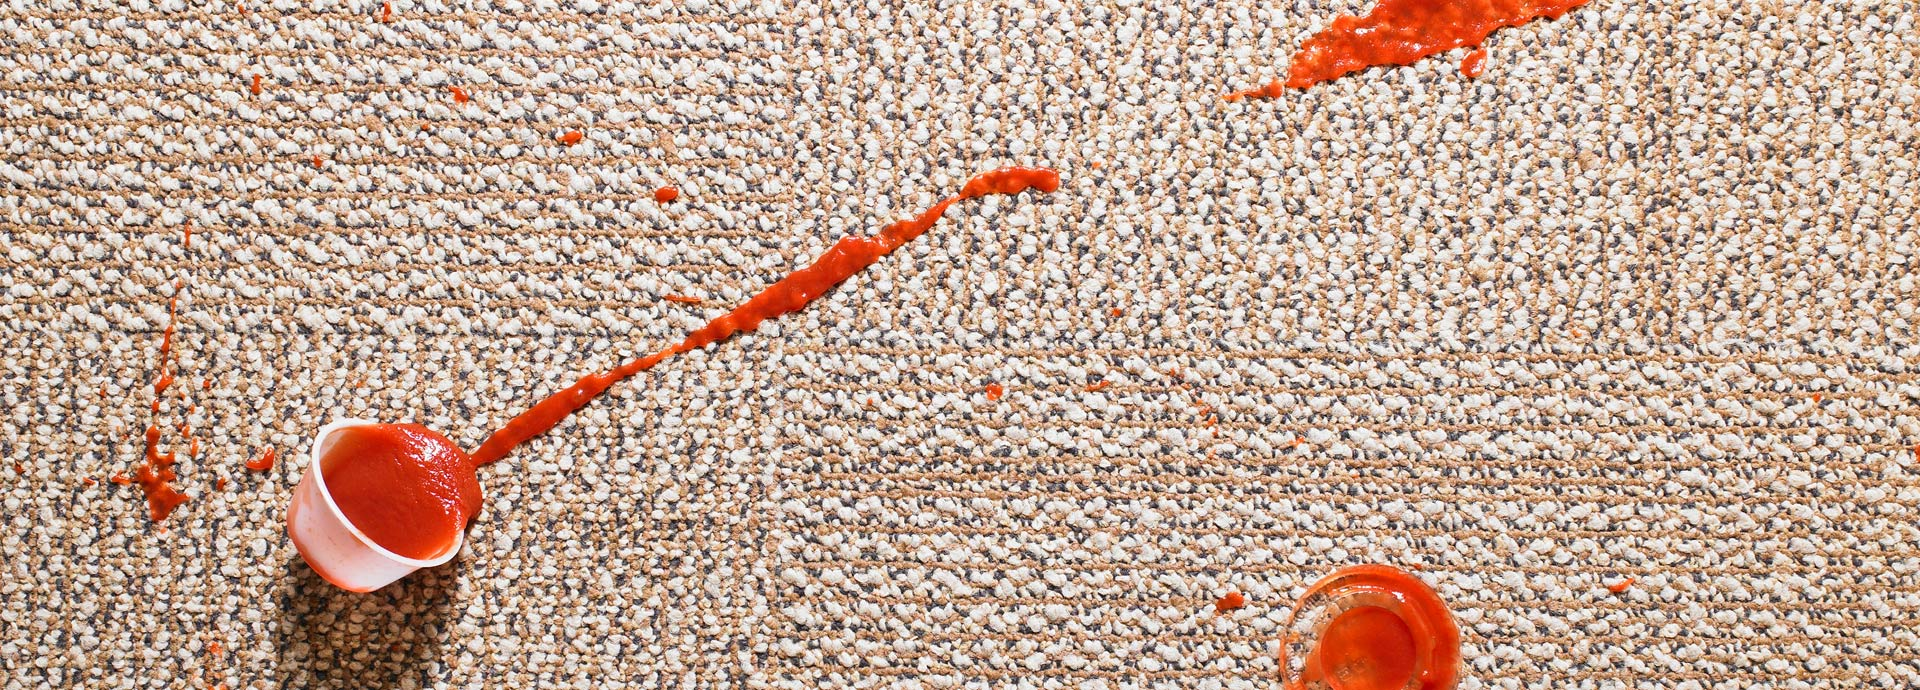 Carpet Cleaning In Houston Texas 4